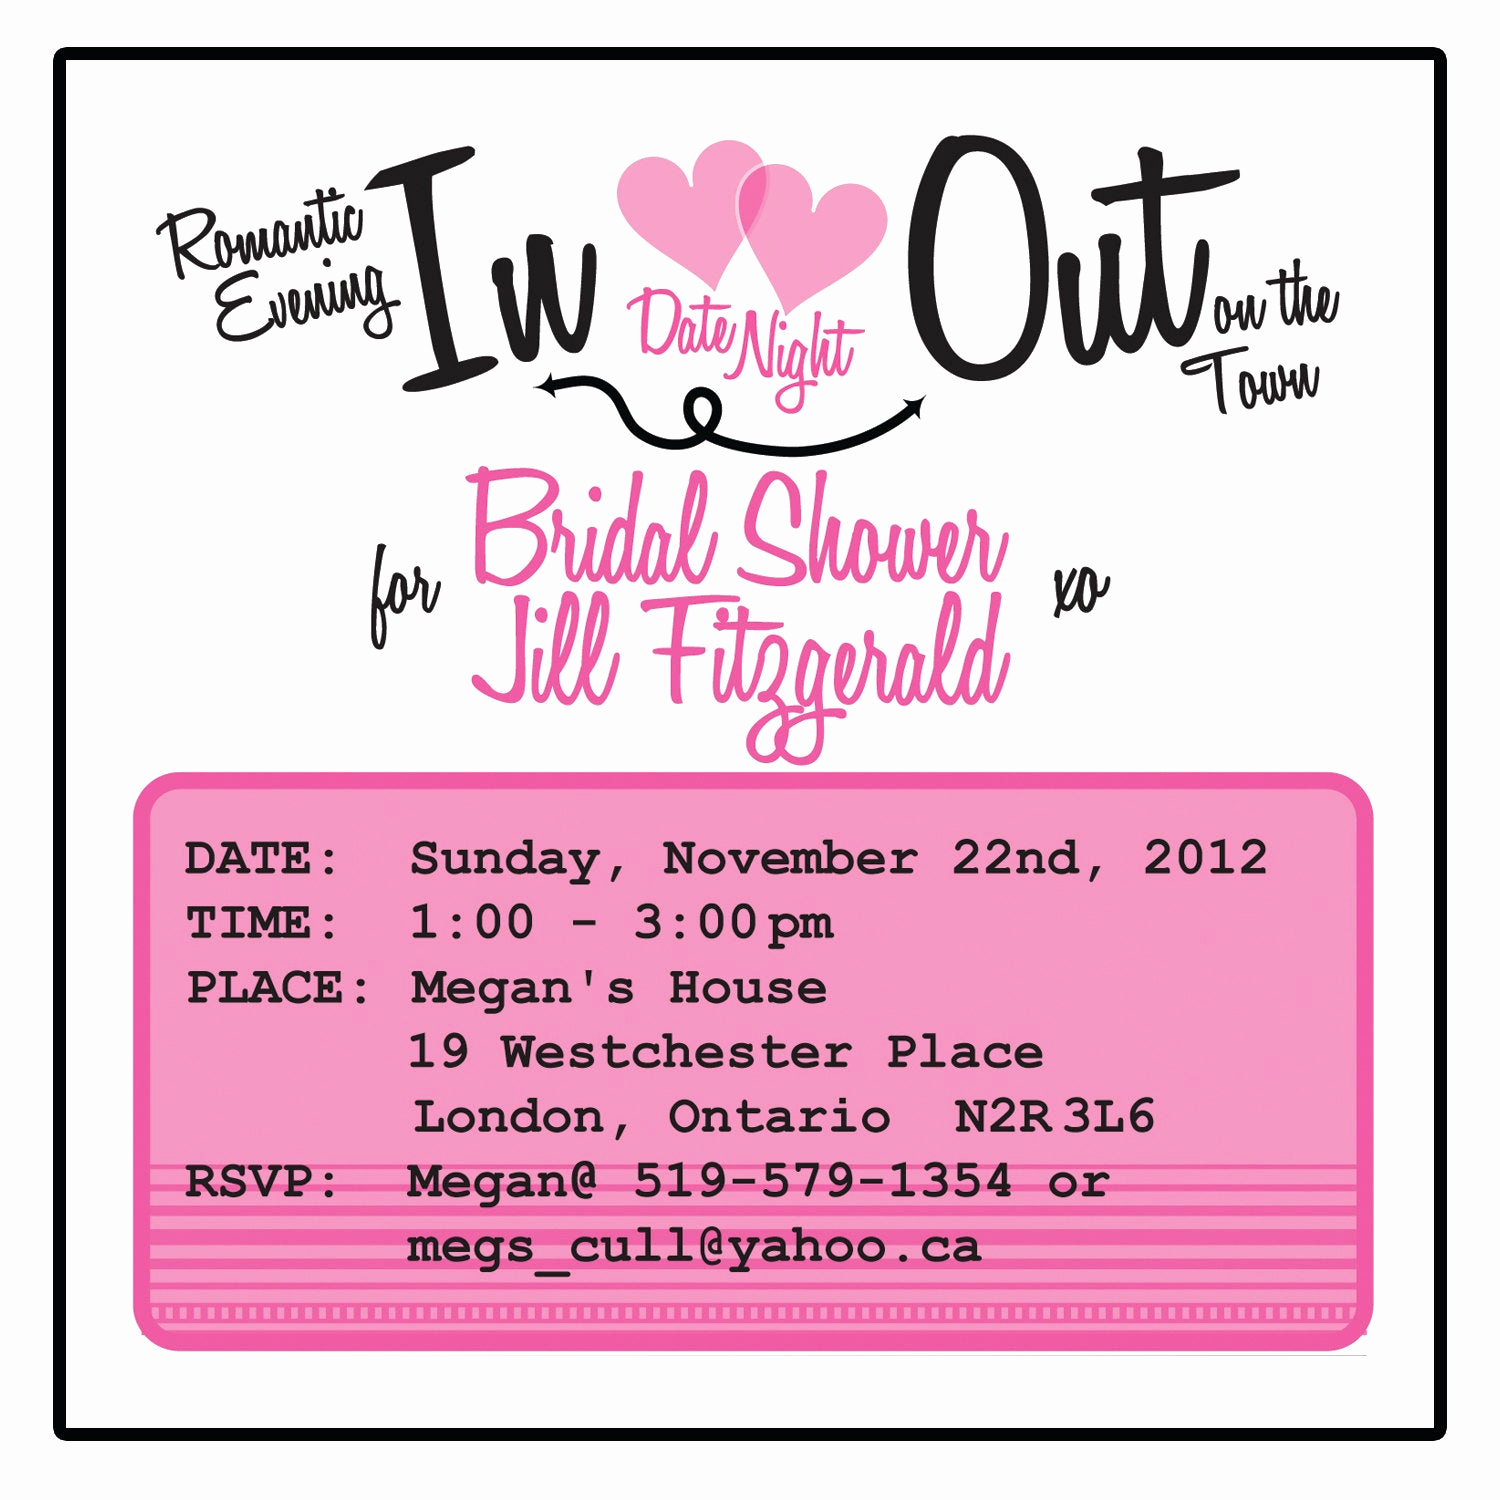 Bridal Shower Invitation Wording Lovely Bridal Shower Invitation Date Night theme by Merrilydesigns